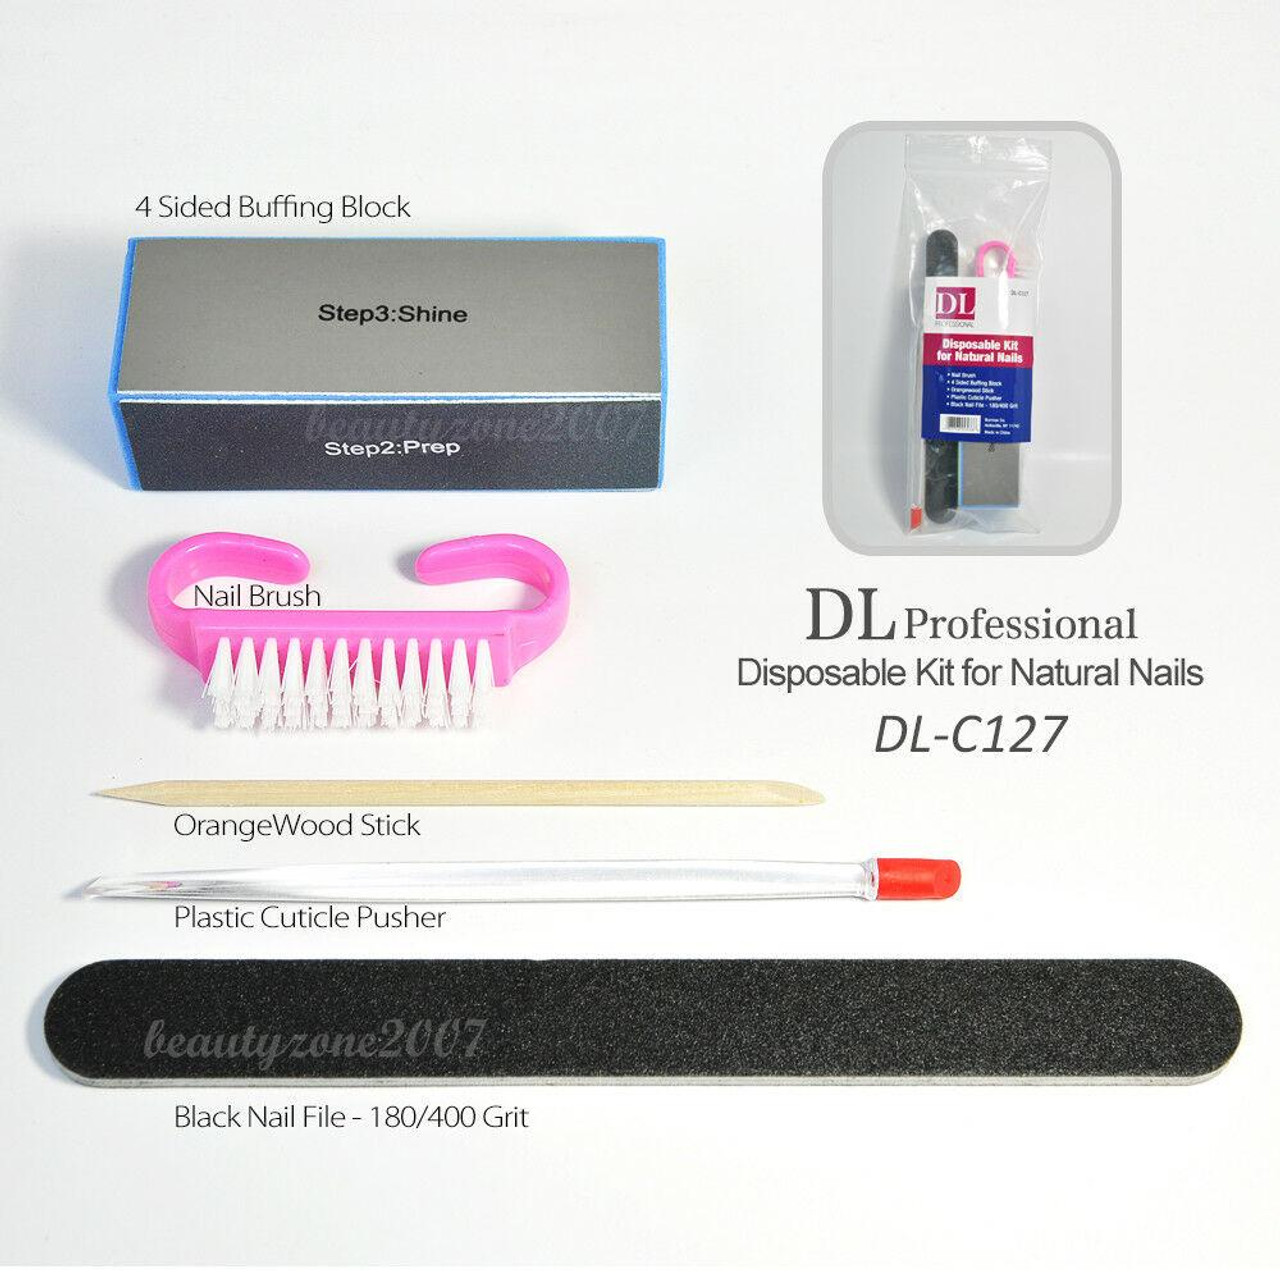 DL-C127 Disposable Kit for Natural Nails - BeautyChain